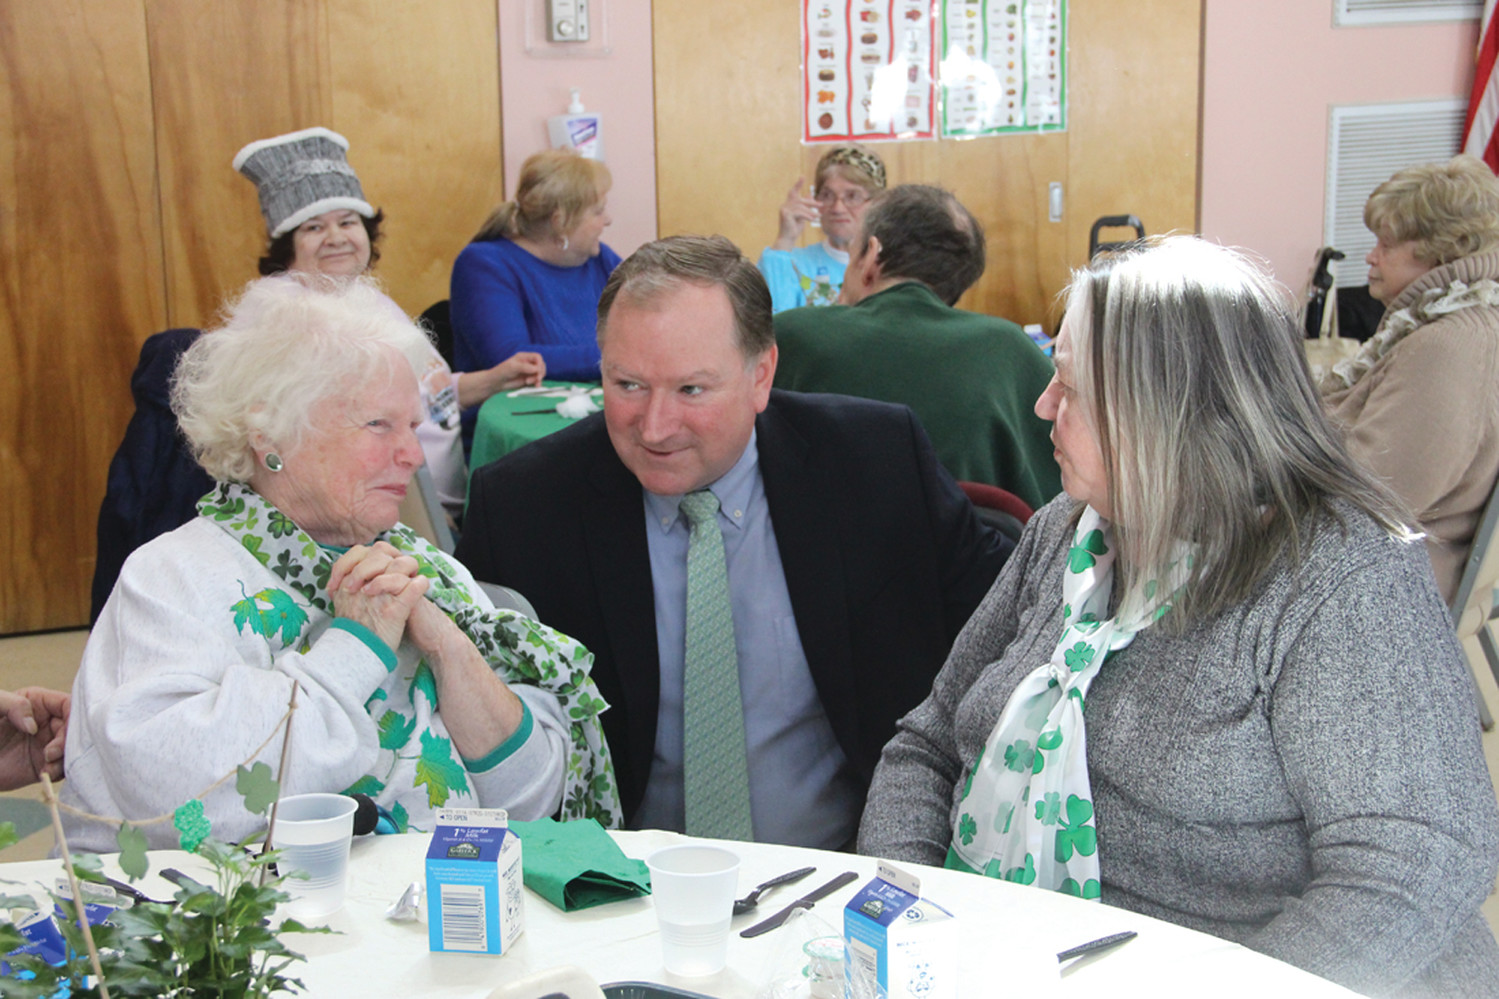 ONE-ON-ONE: Senator Michael McCaffrey, who hosted the luncheon, talks with Pat Pontarelli and Rosemary Daniels.